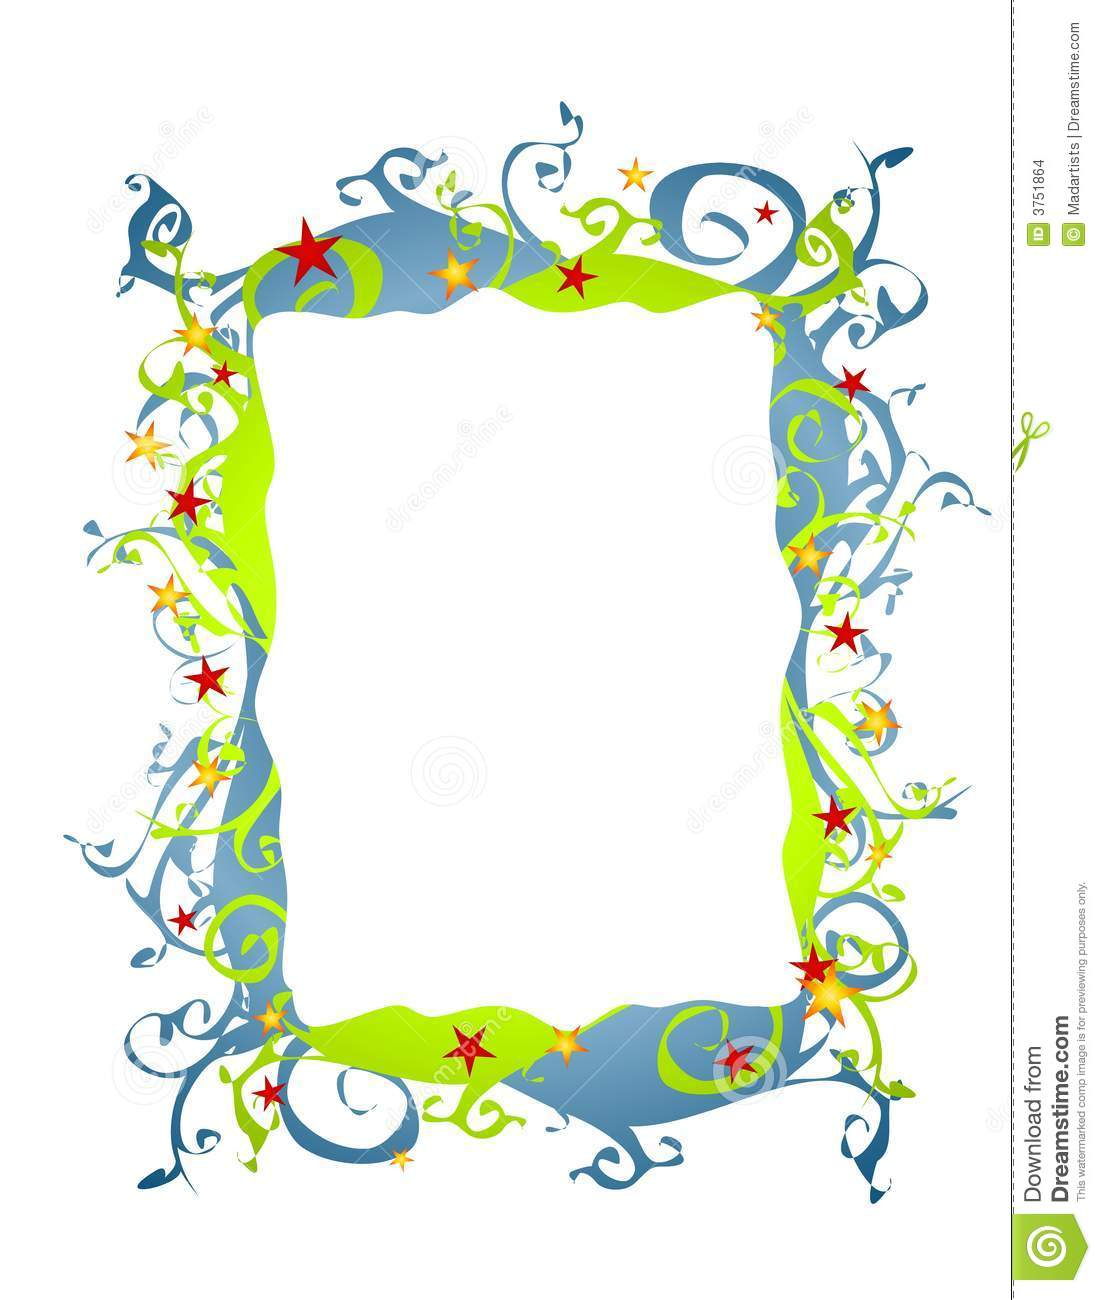 Abstract clipart frame png black and white library Colorful Borders Clipart | Free download best Colorful Borders ... png black and white library